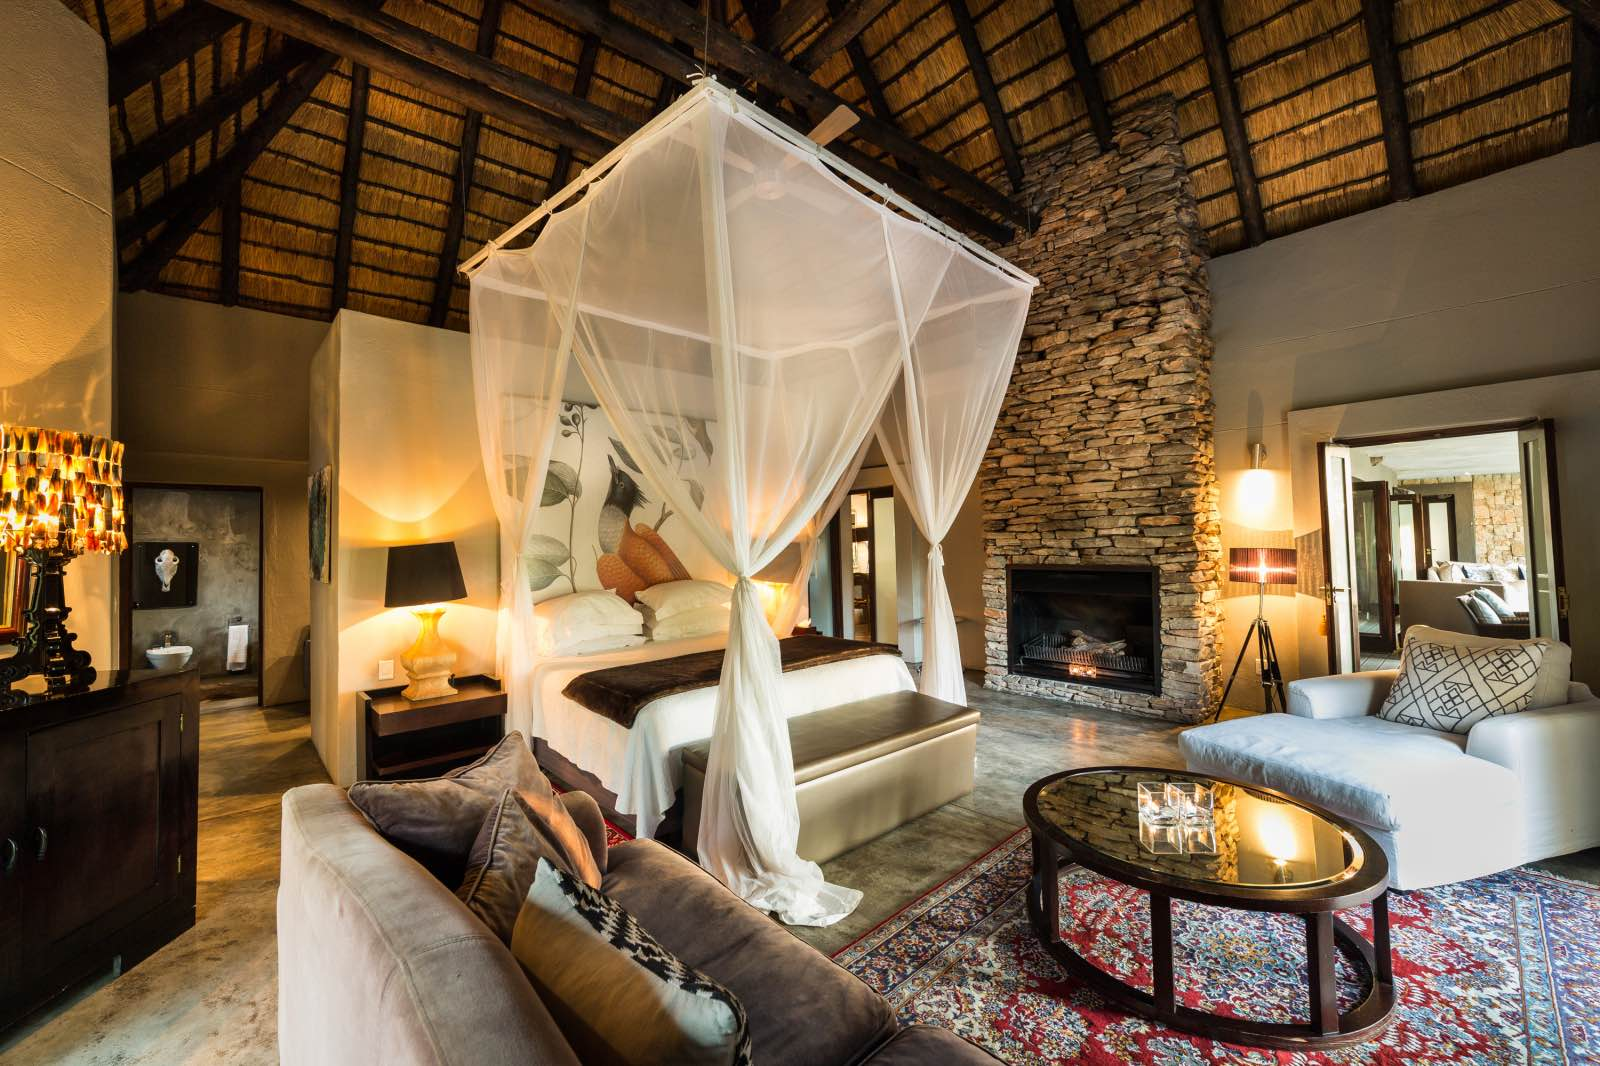 Chitwa House bedroom suite with high thatched ceiling and exquisite detail